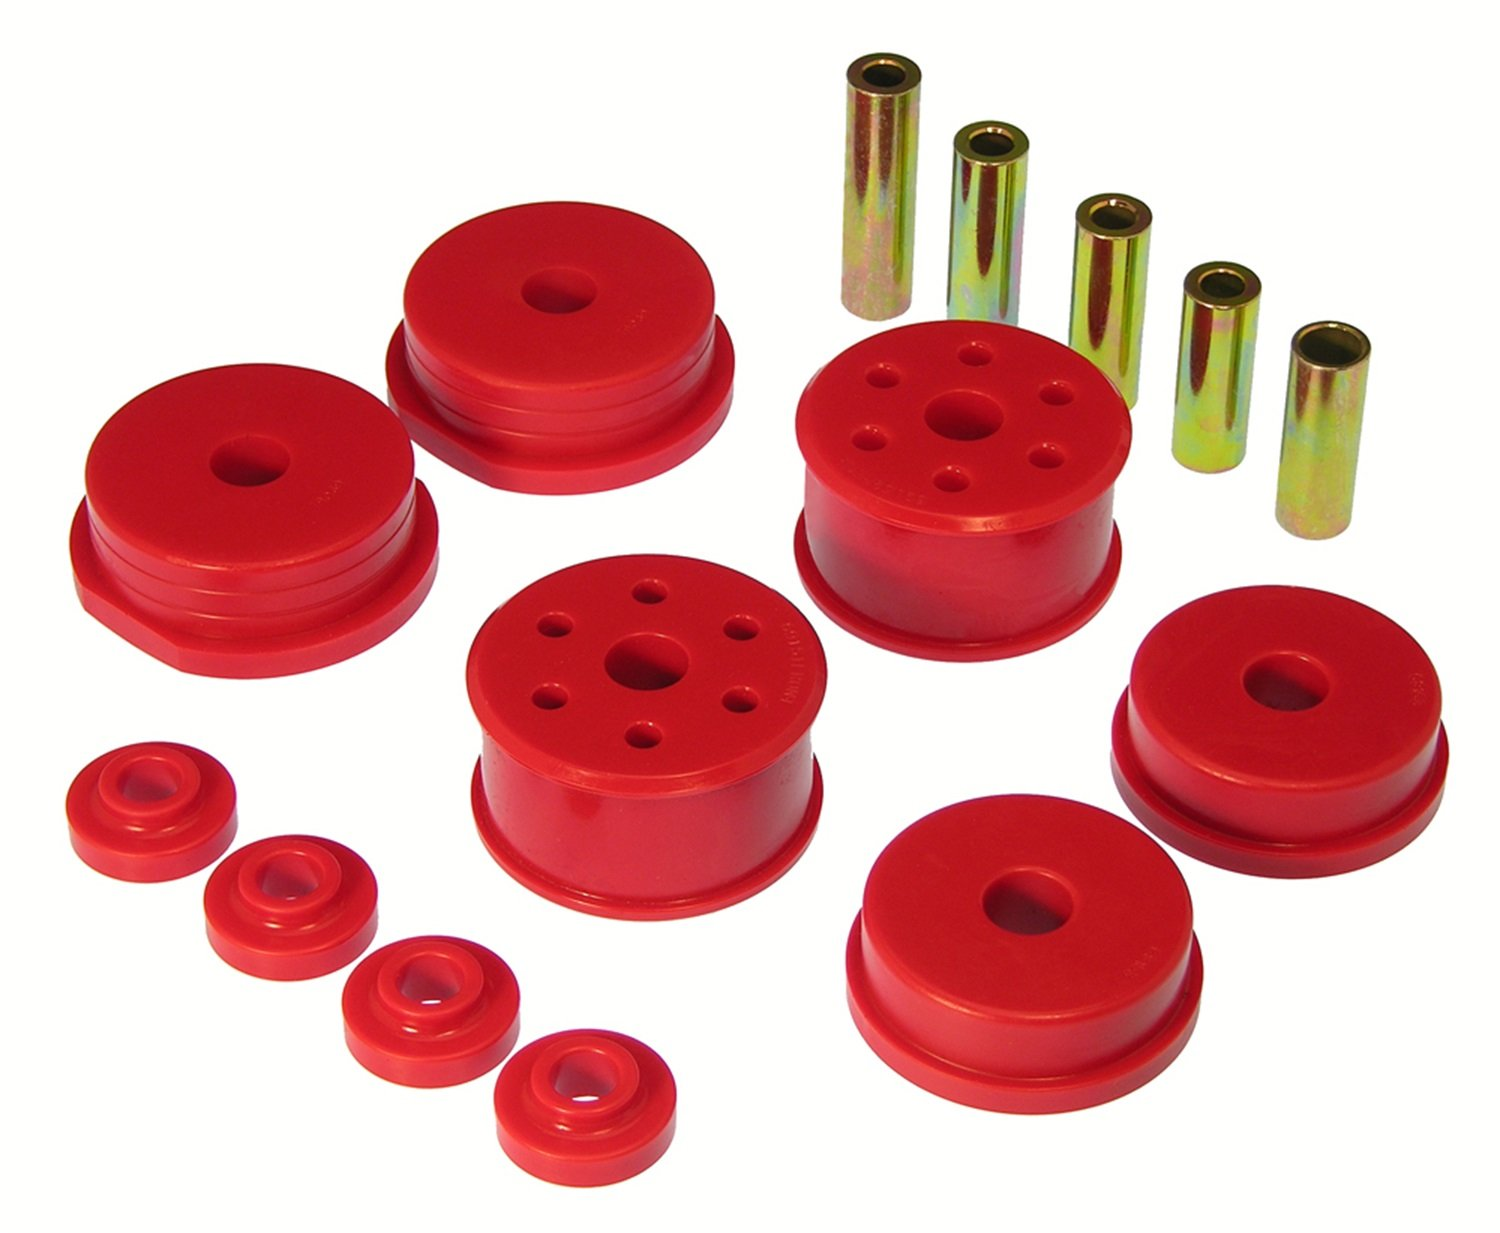 Prothane 13-1903 Red Motor and Transmission Mount Insert Kit by Prothane